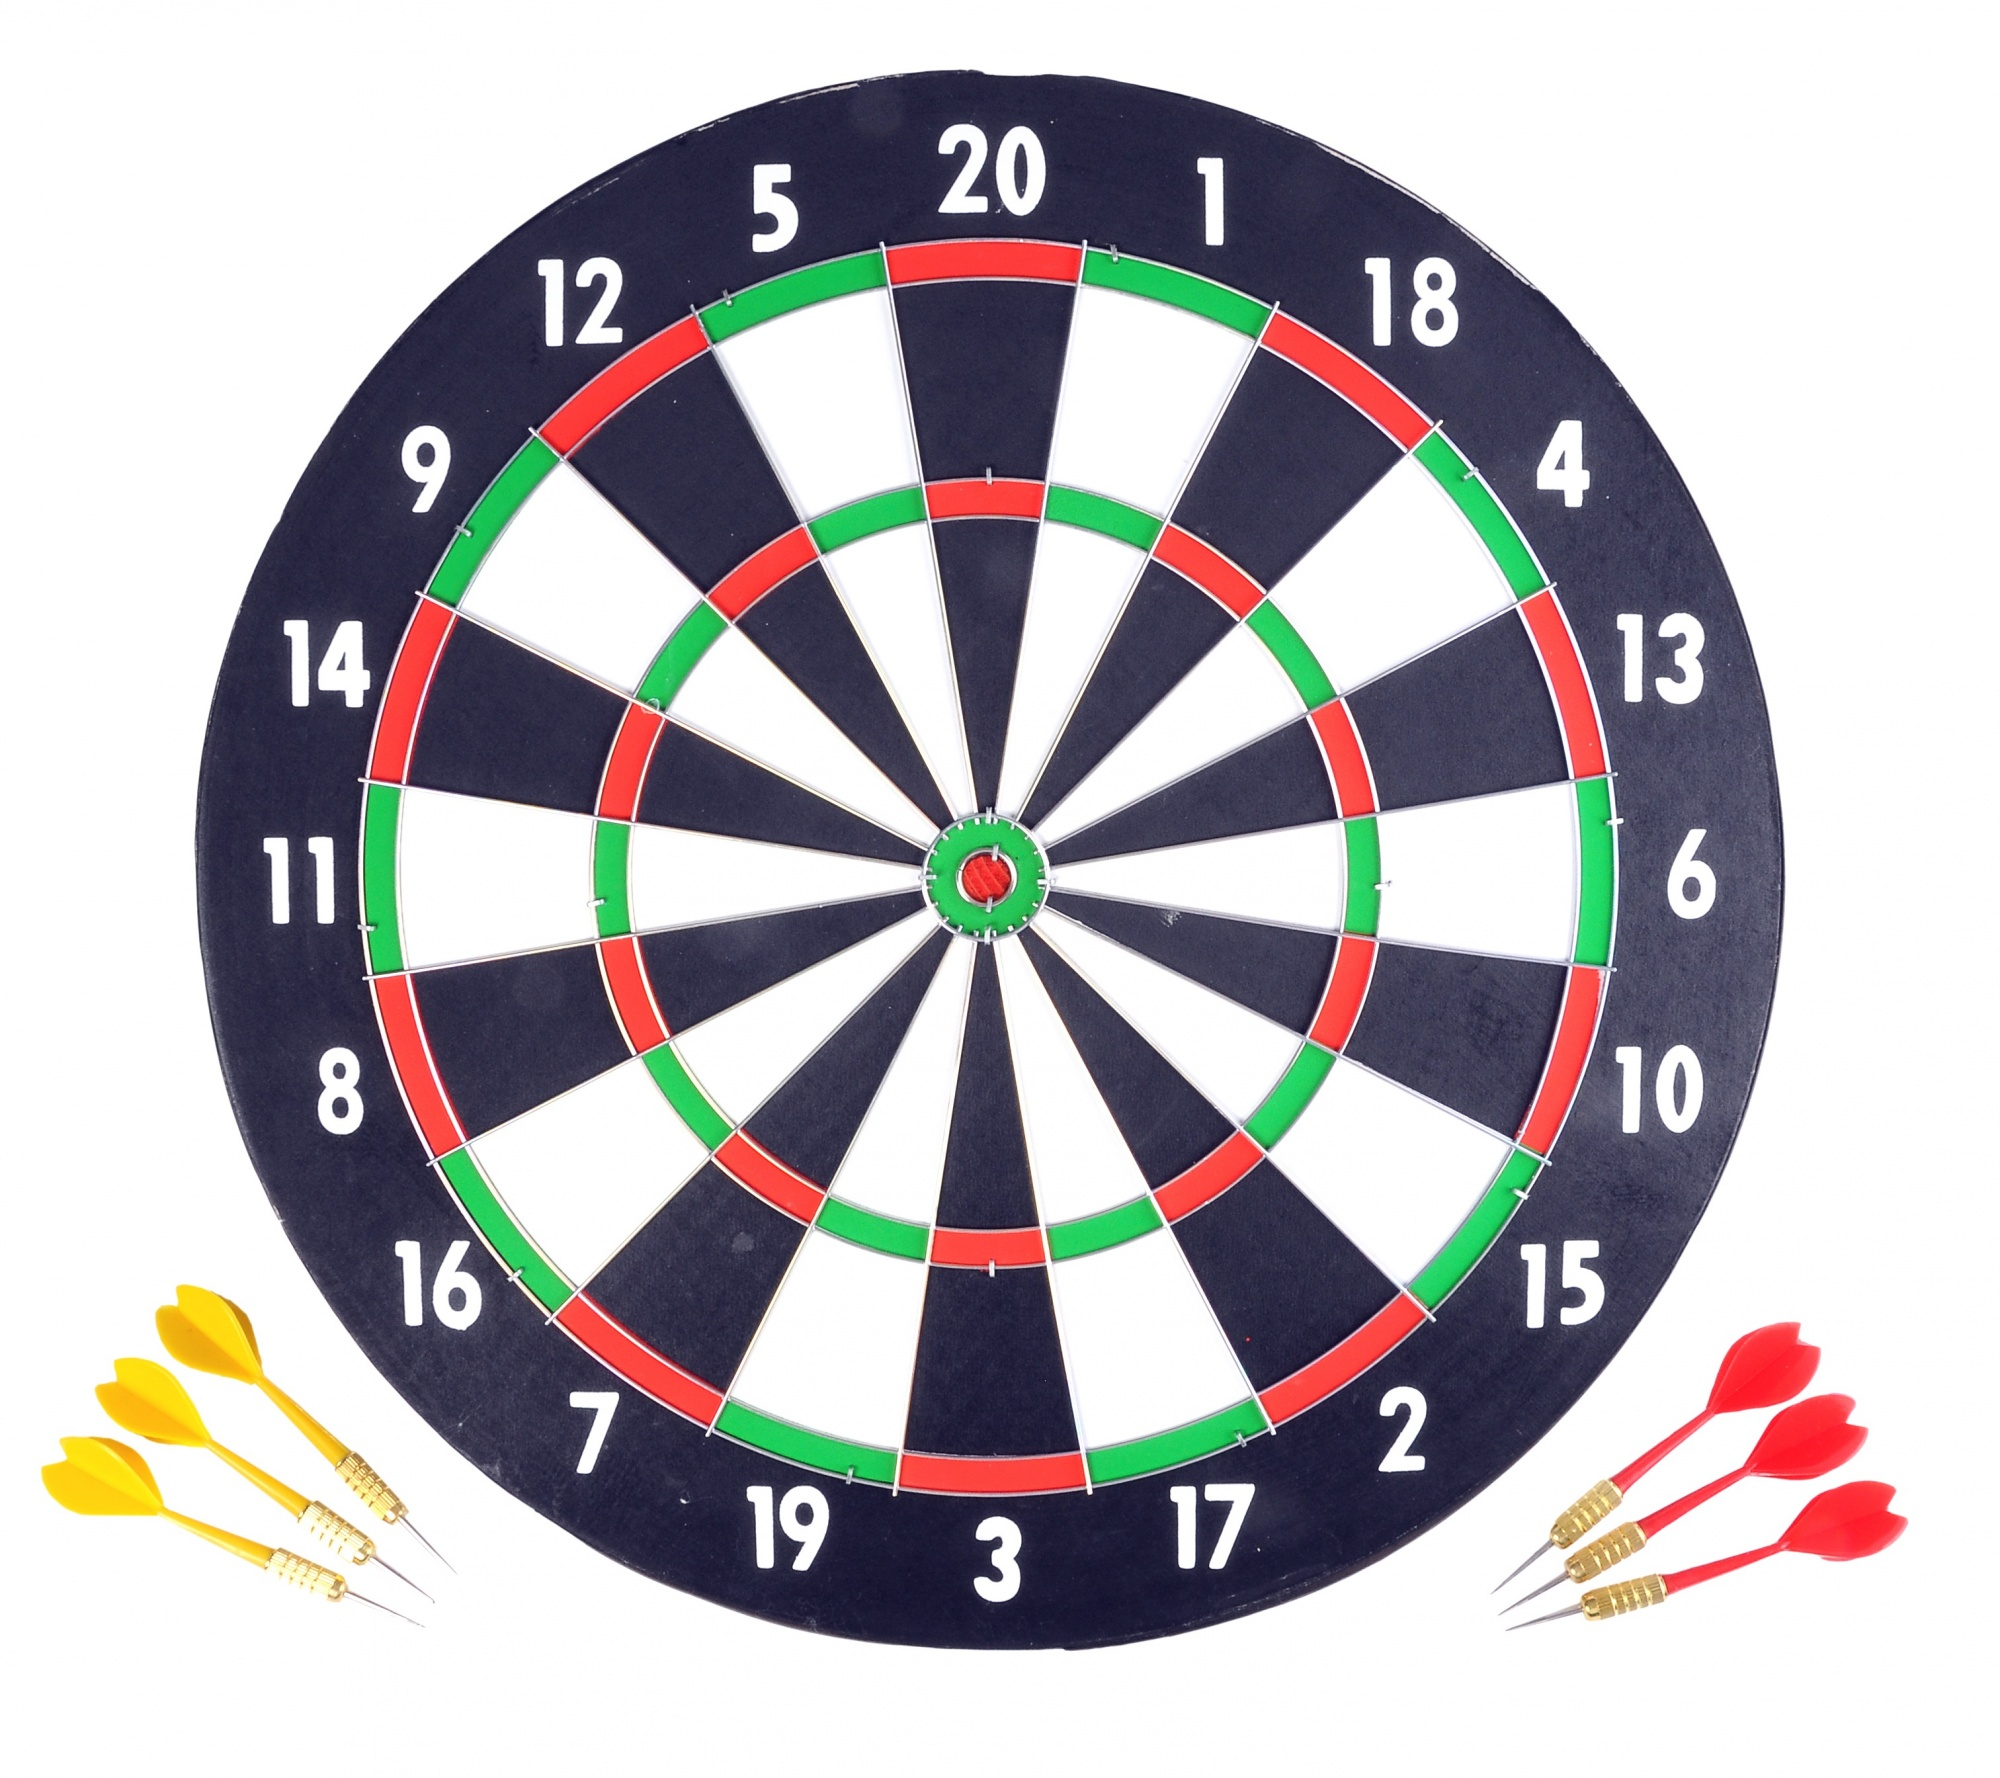 Dartbord 43cm + 6 darts in blister 06500